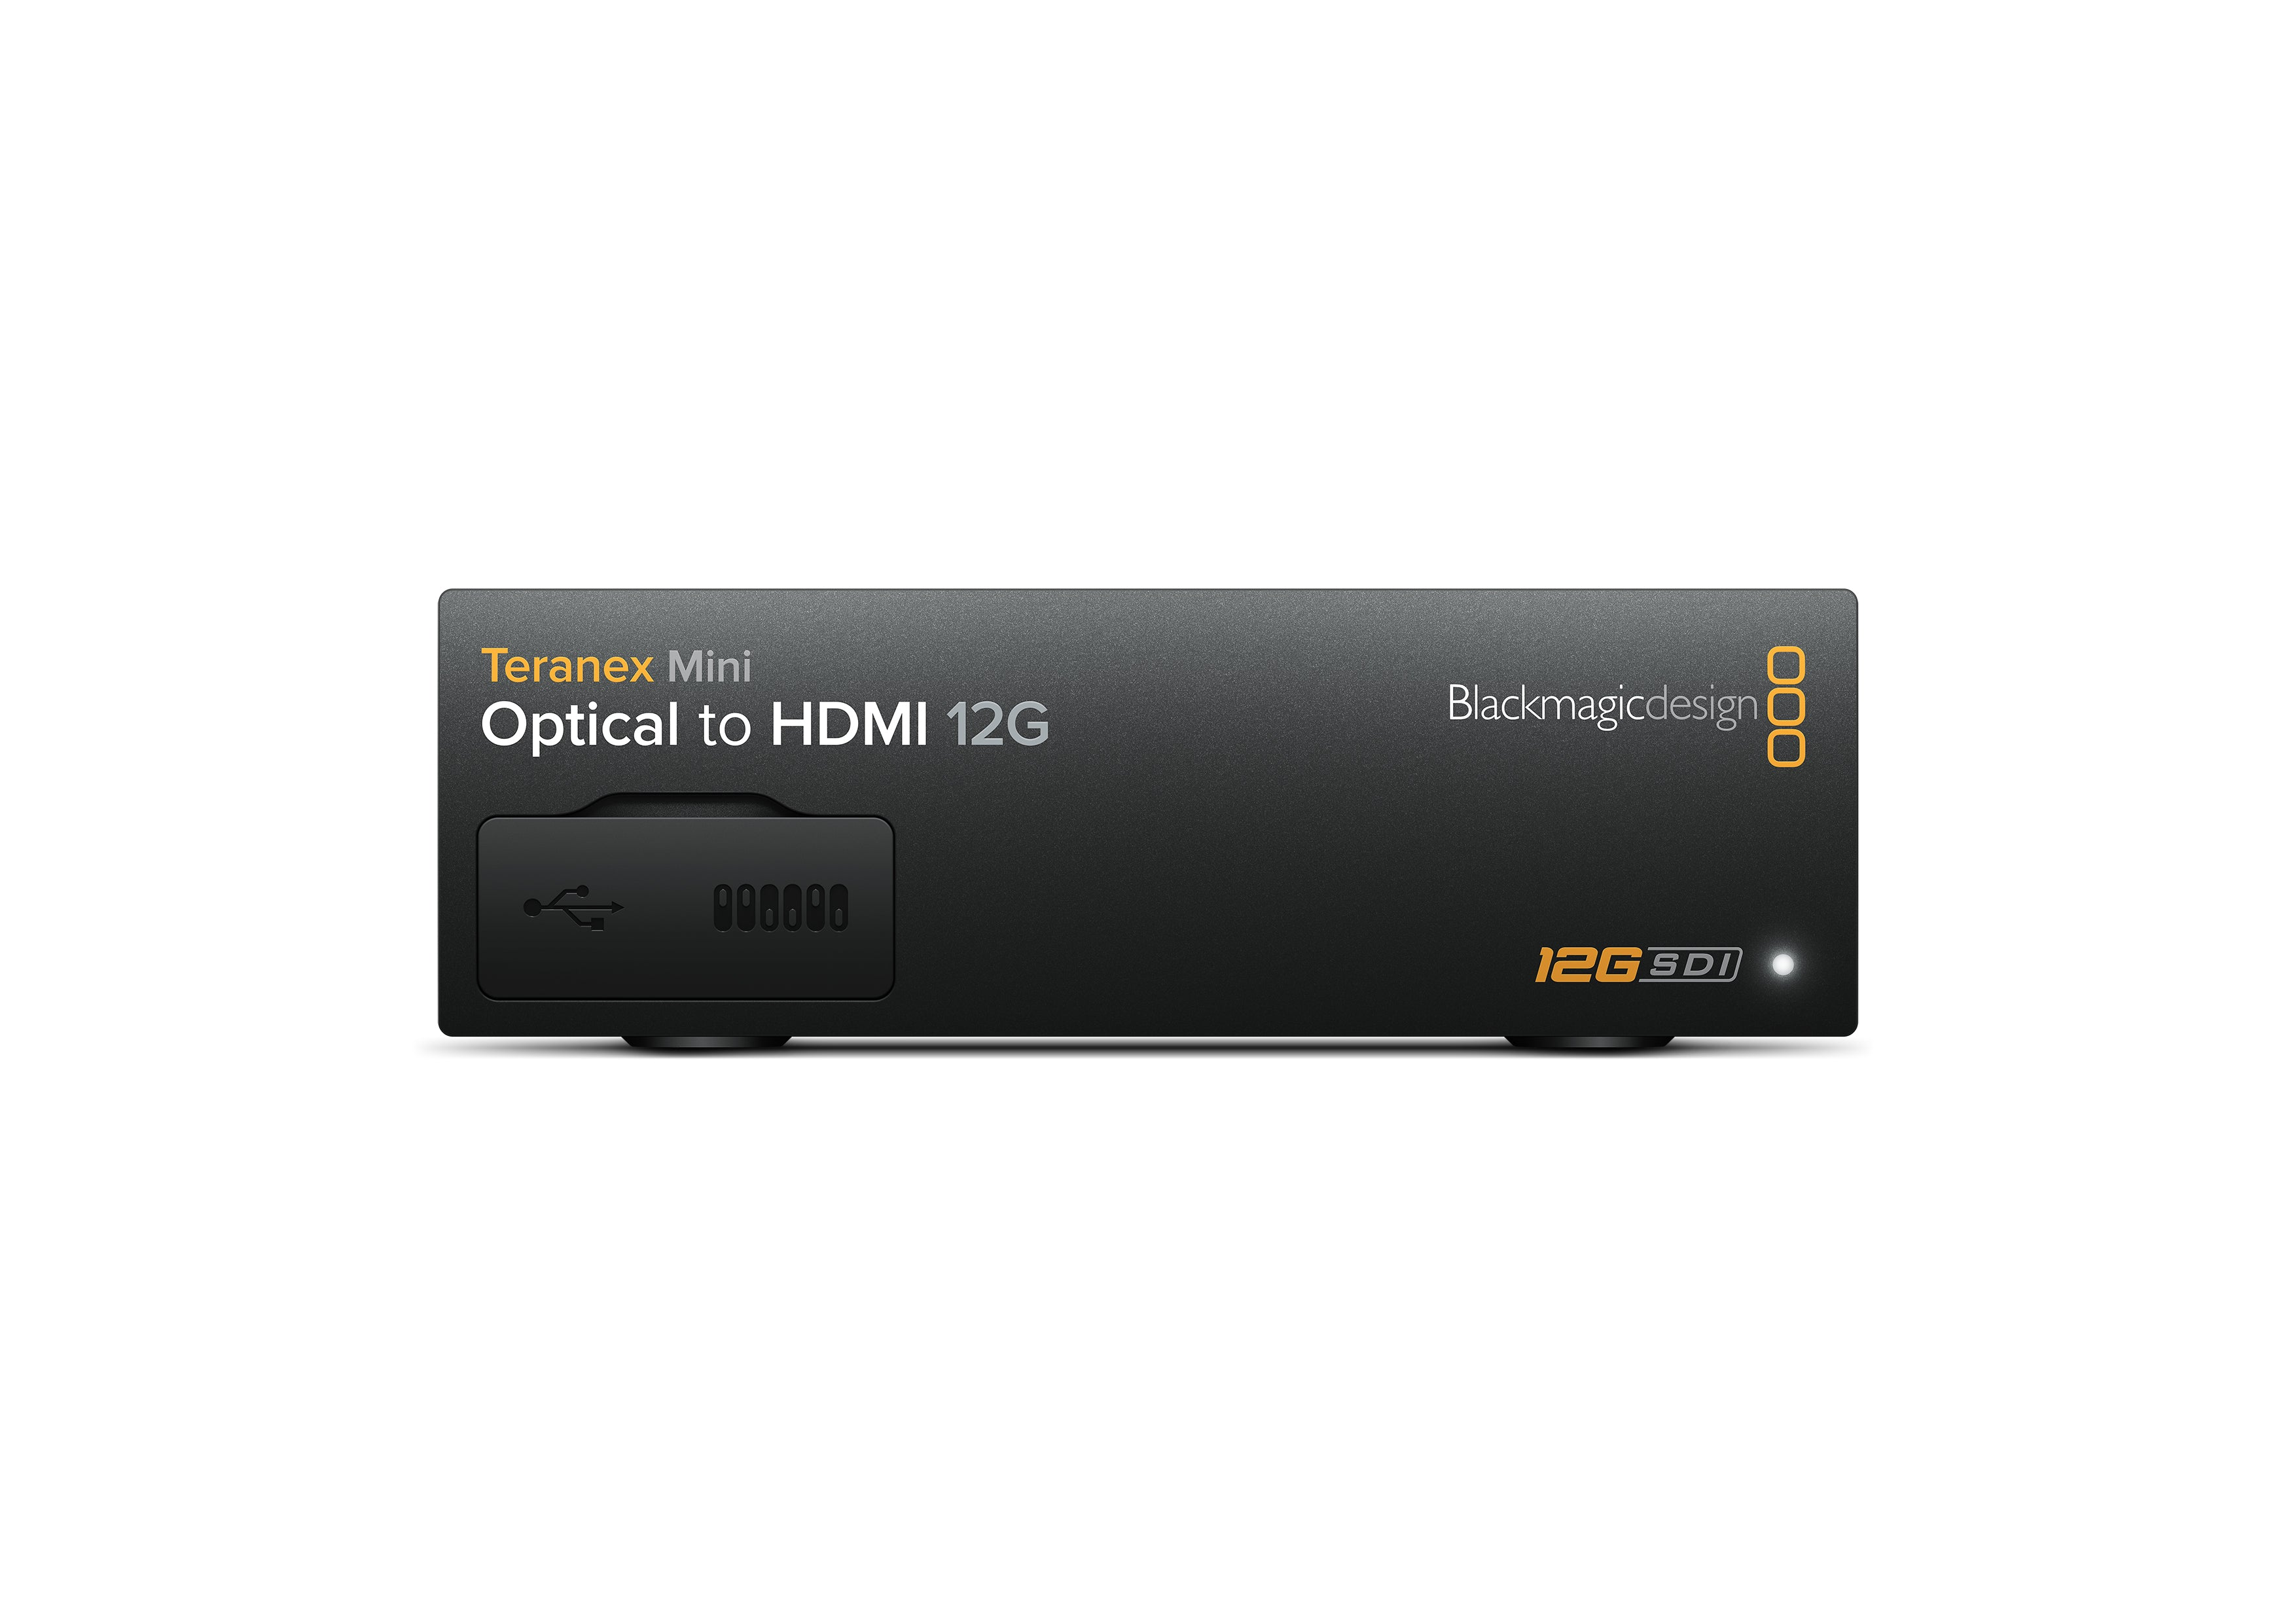 Teranex Mini Optical to HDMI 12G